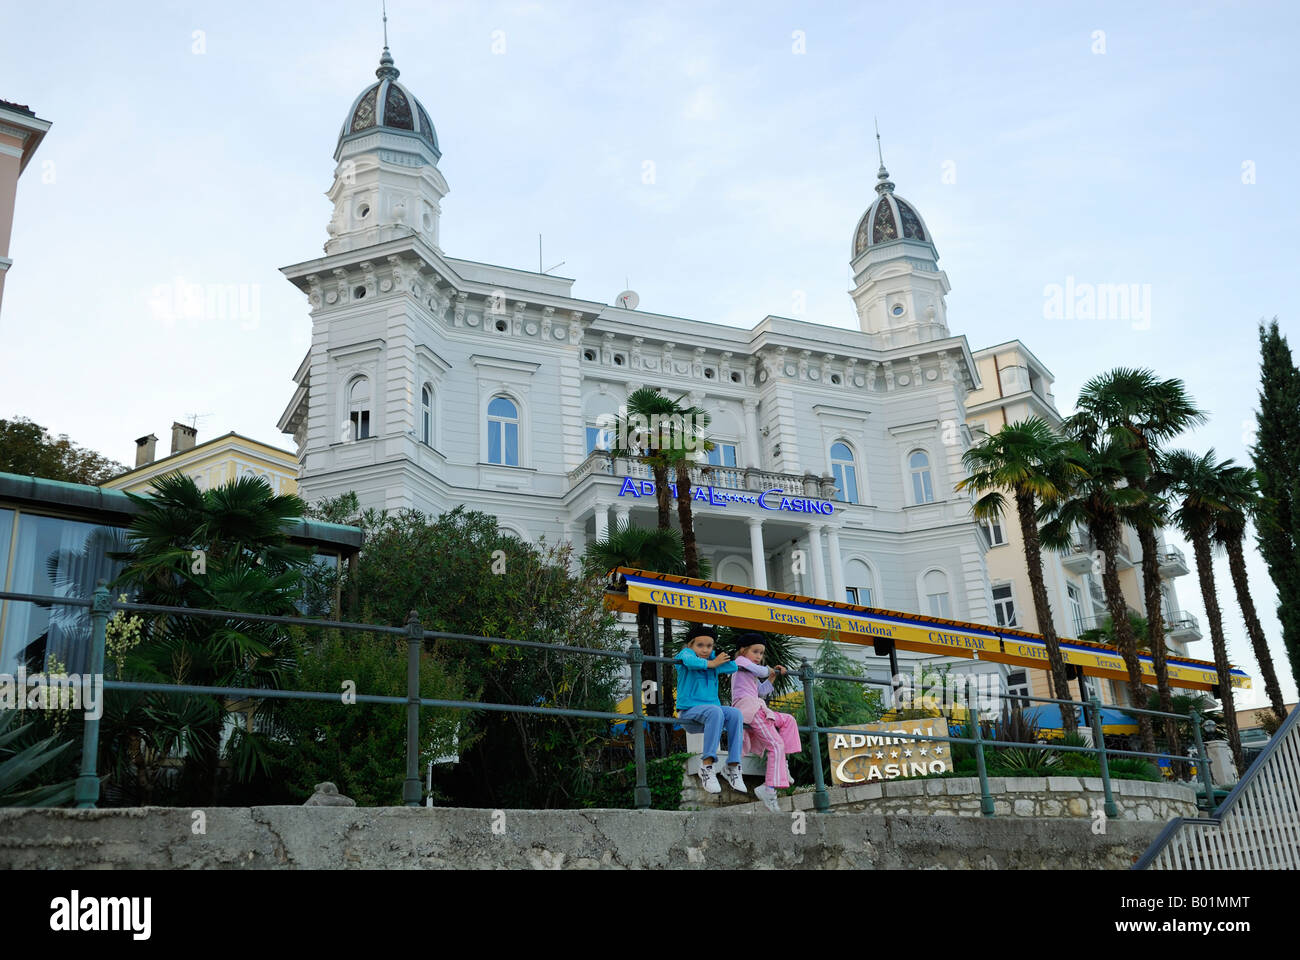 2 children wearing French berets, sitting on railing, Admiral Casino building in background. Opatija, Croatia Stock Photo